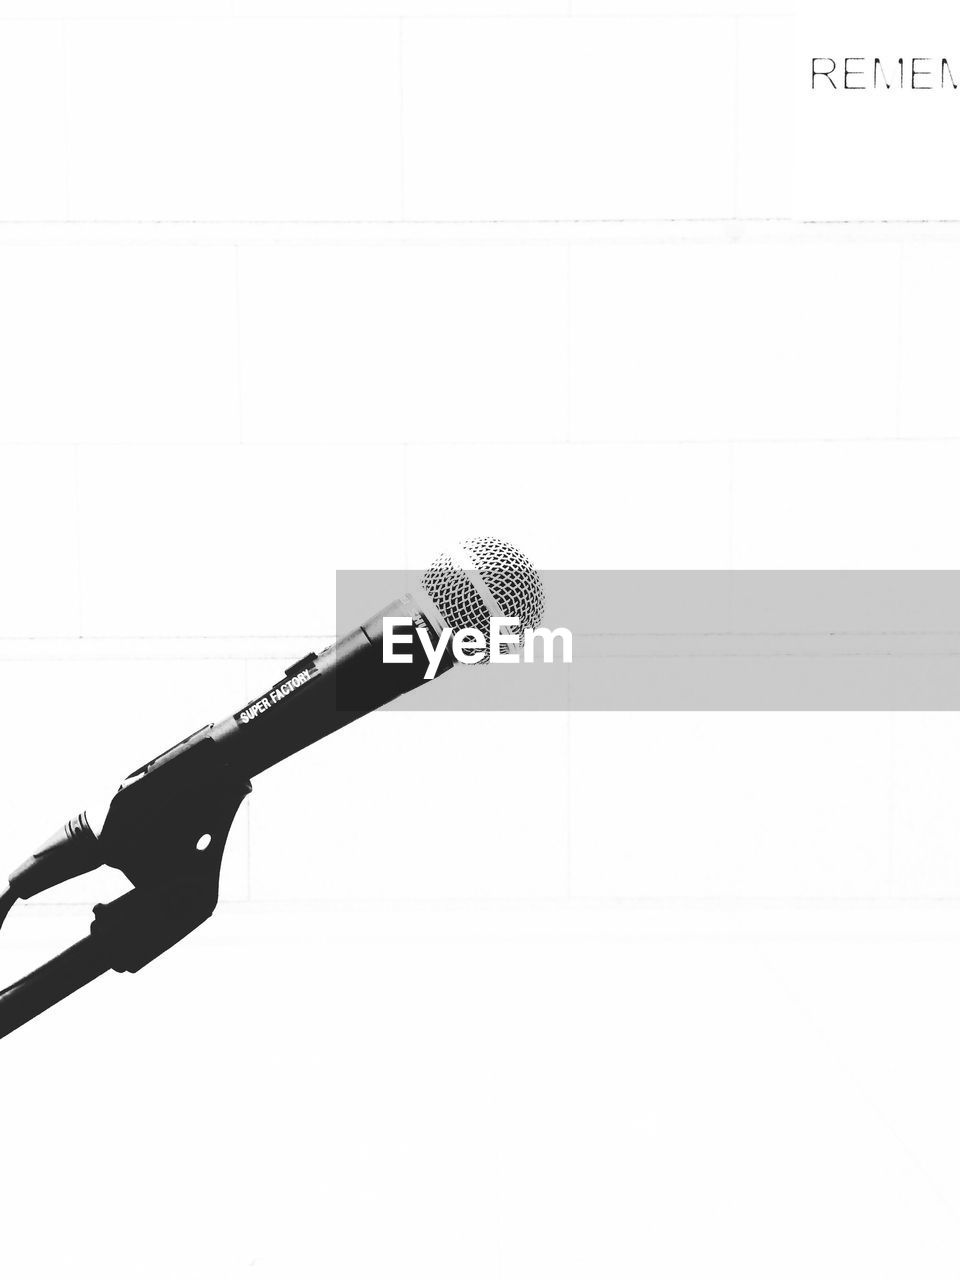 microphone, single object, microphone stand, no people, indoors, shower head, close-up, white background, arts culture and entertainment, studio shot, technology, day